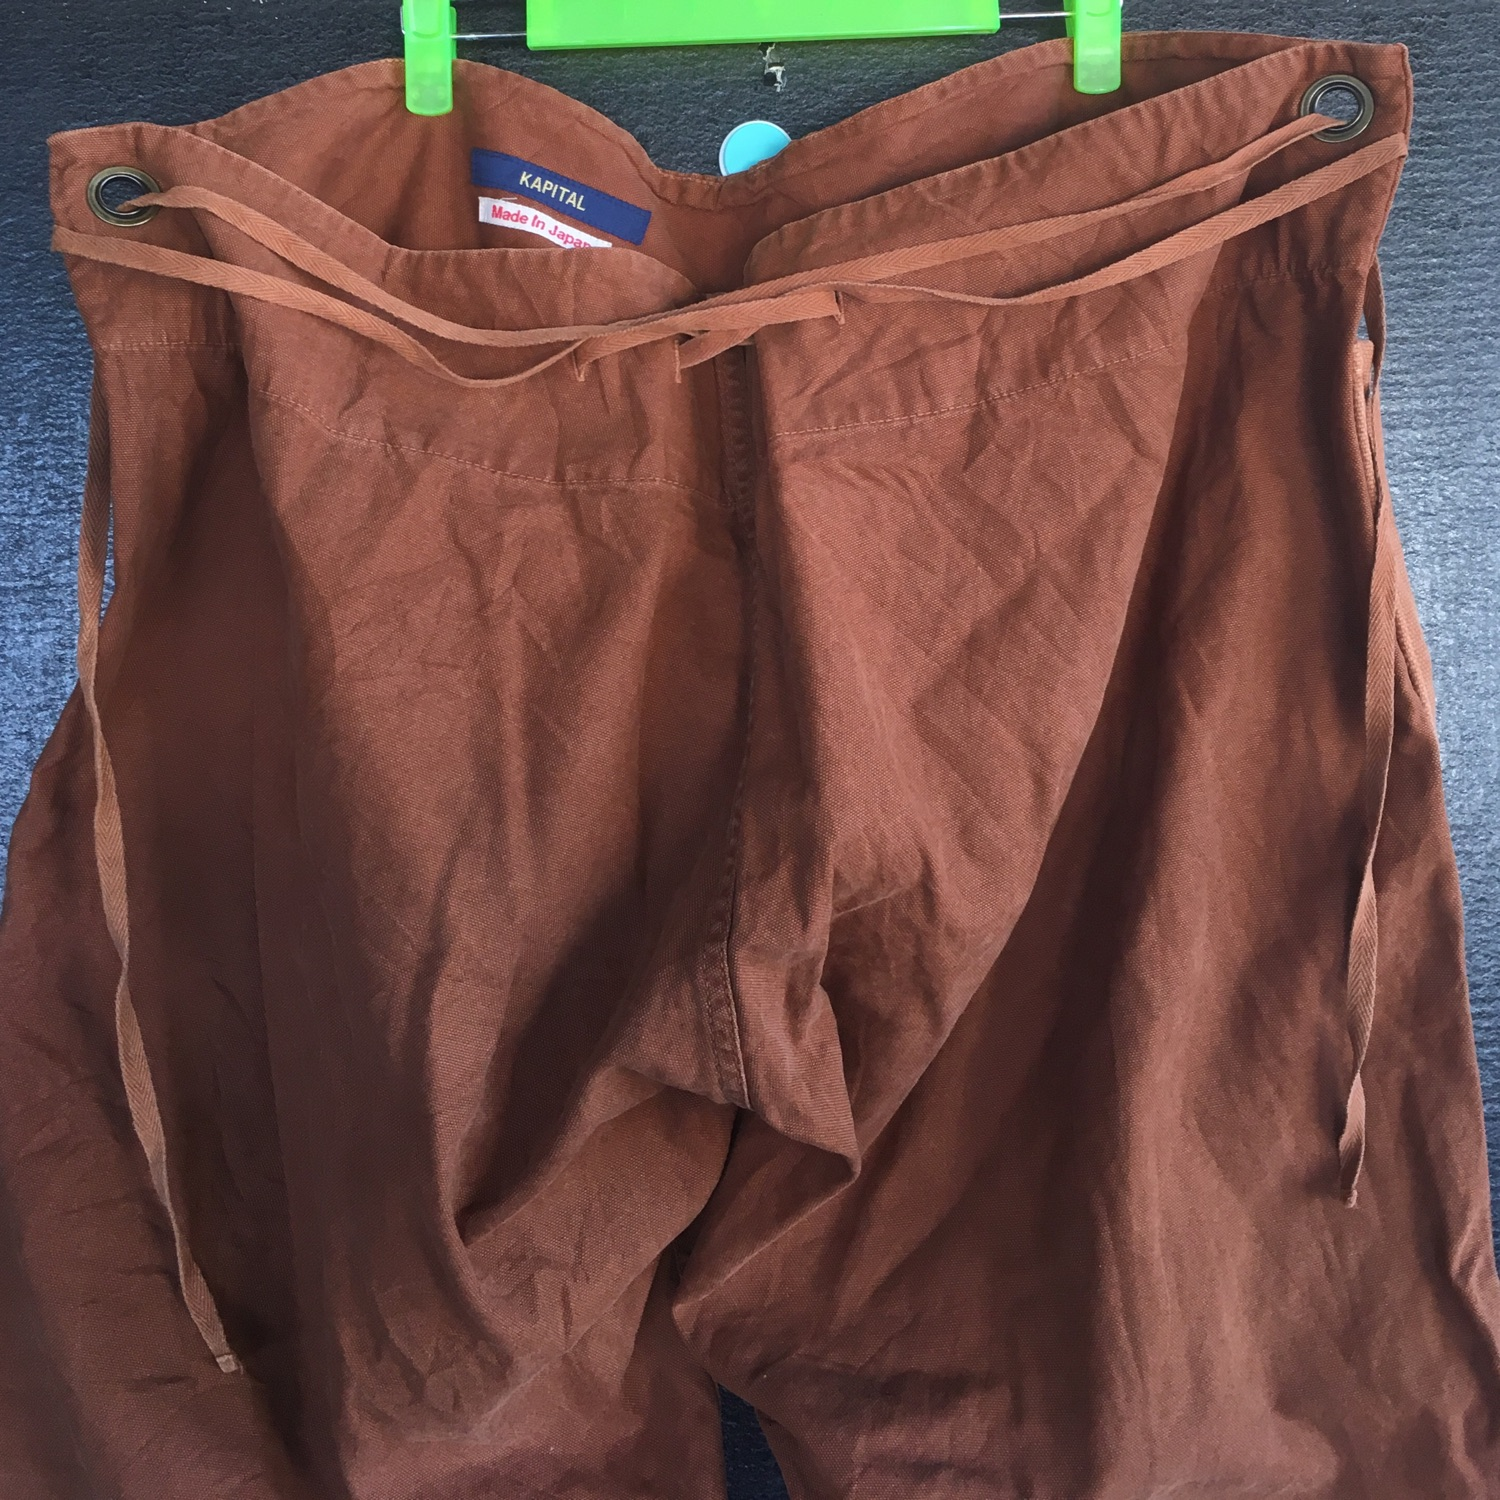 Kapital Baggy Pant Oversized Design Fit 36 To 46